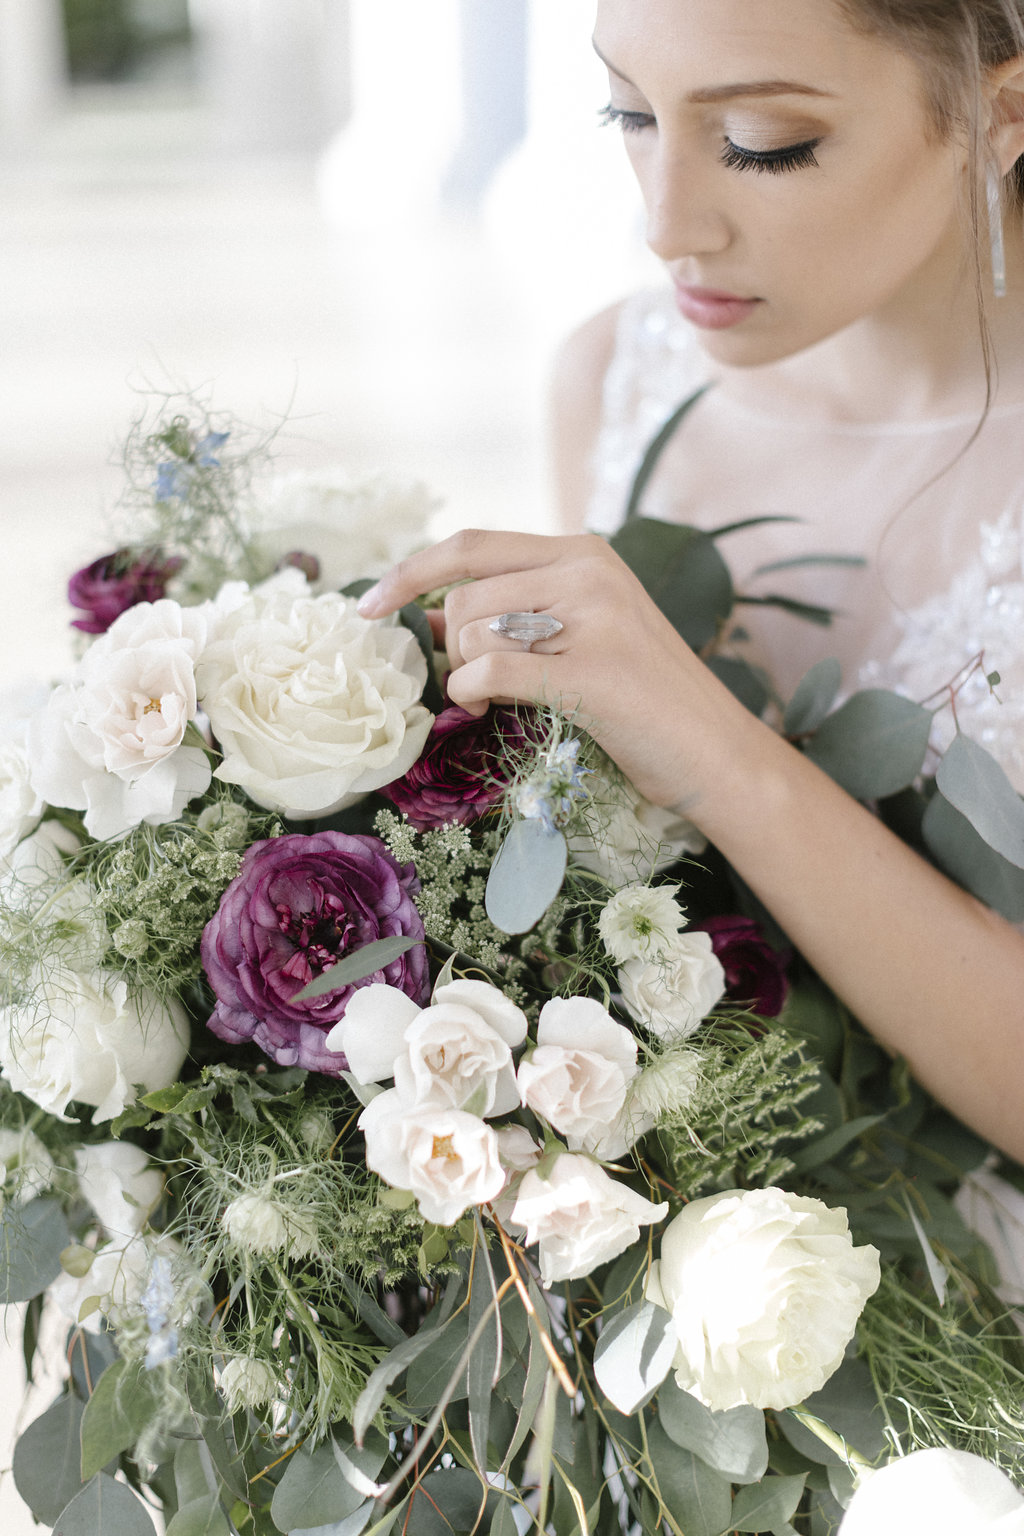 Bride with over-sized cascade bouquet & handcrafted ring - fresh flowers